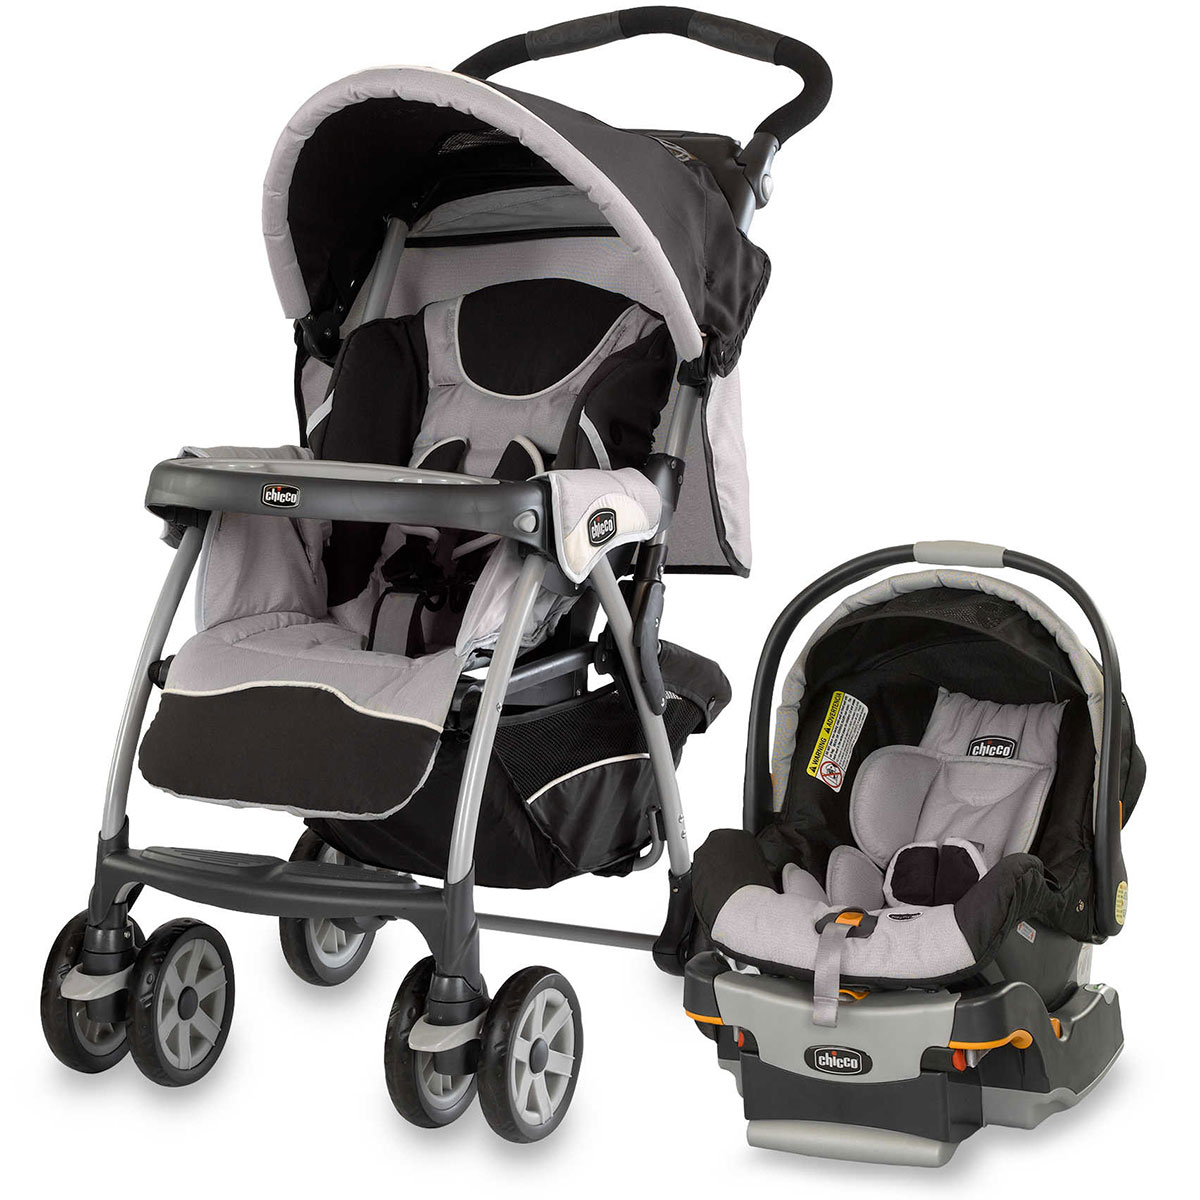 Chicco Romantic Travel System Reviews